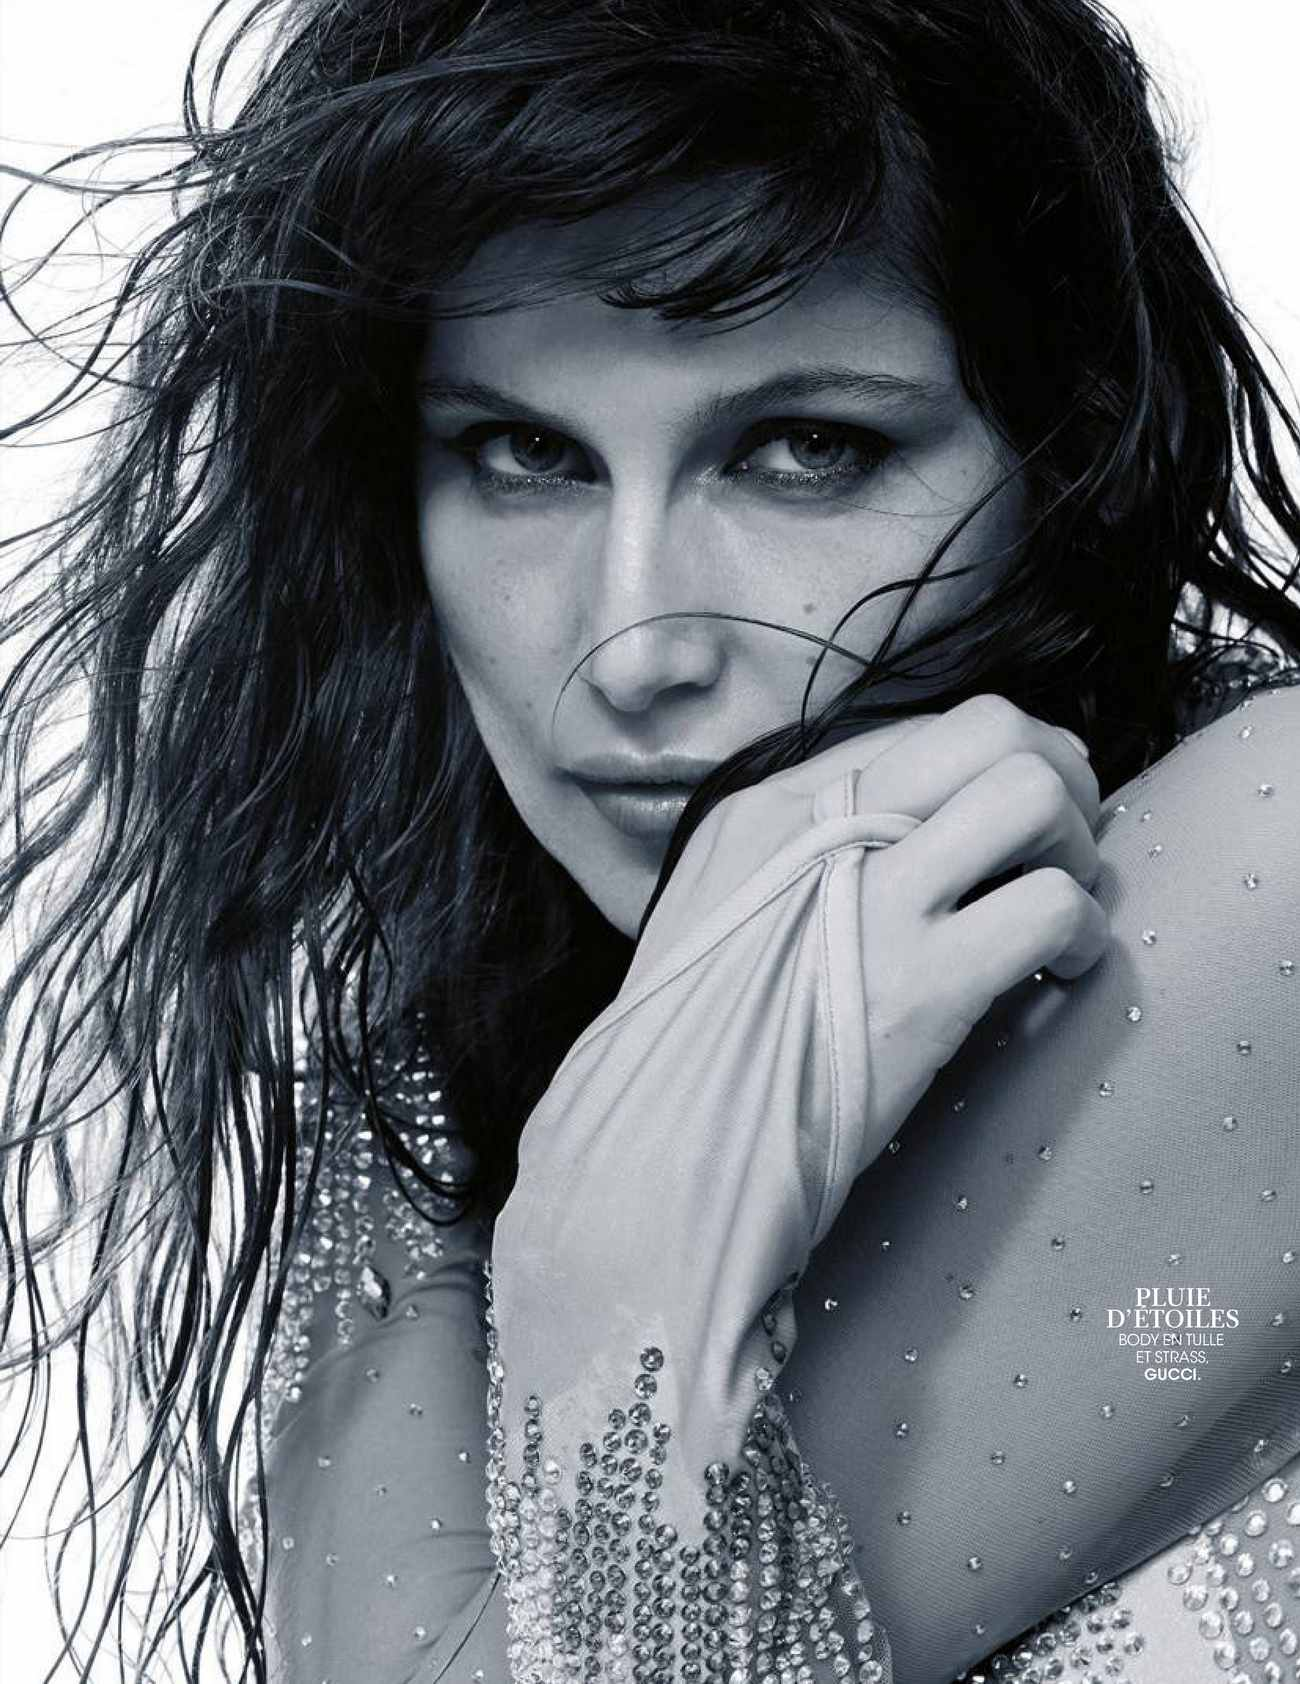 Laetitia-Casta-Madame-Figaro-18-May-201800002.jpg